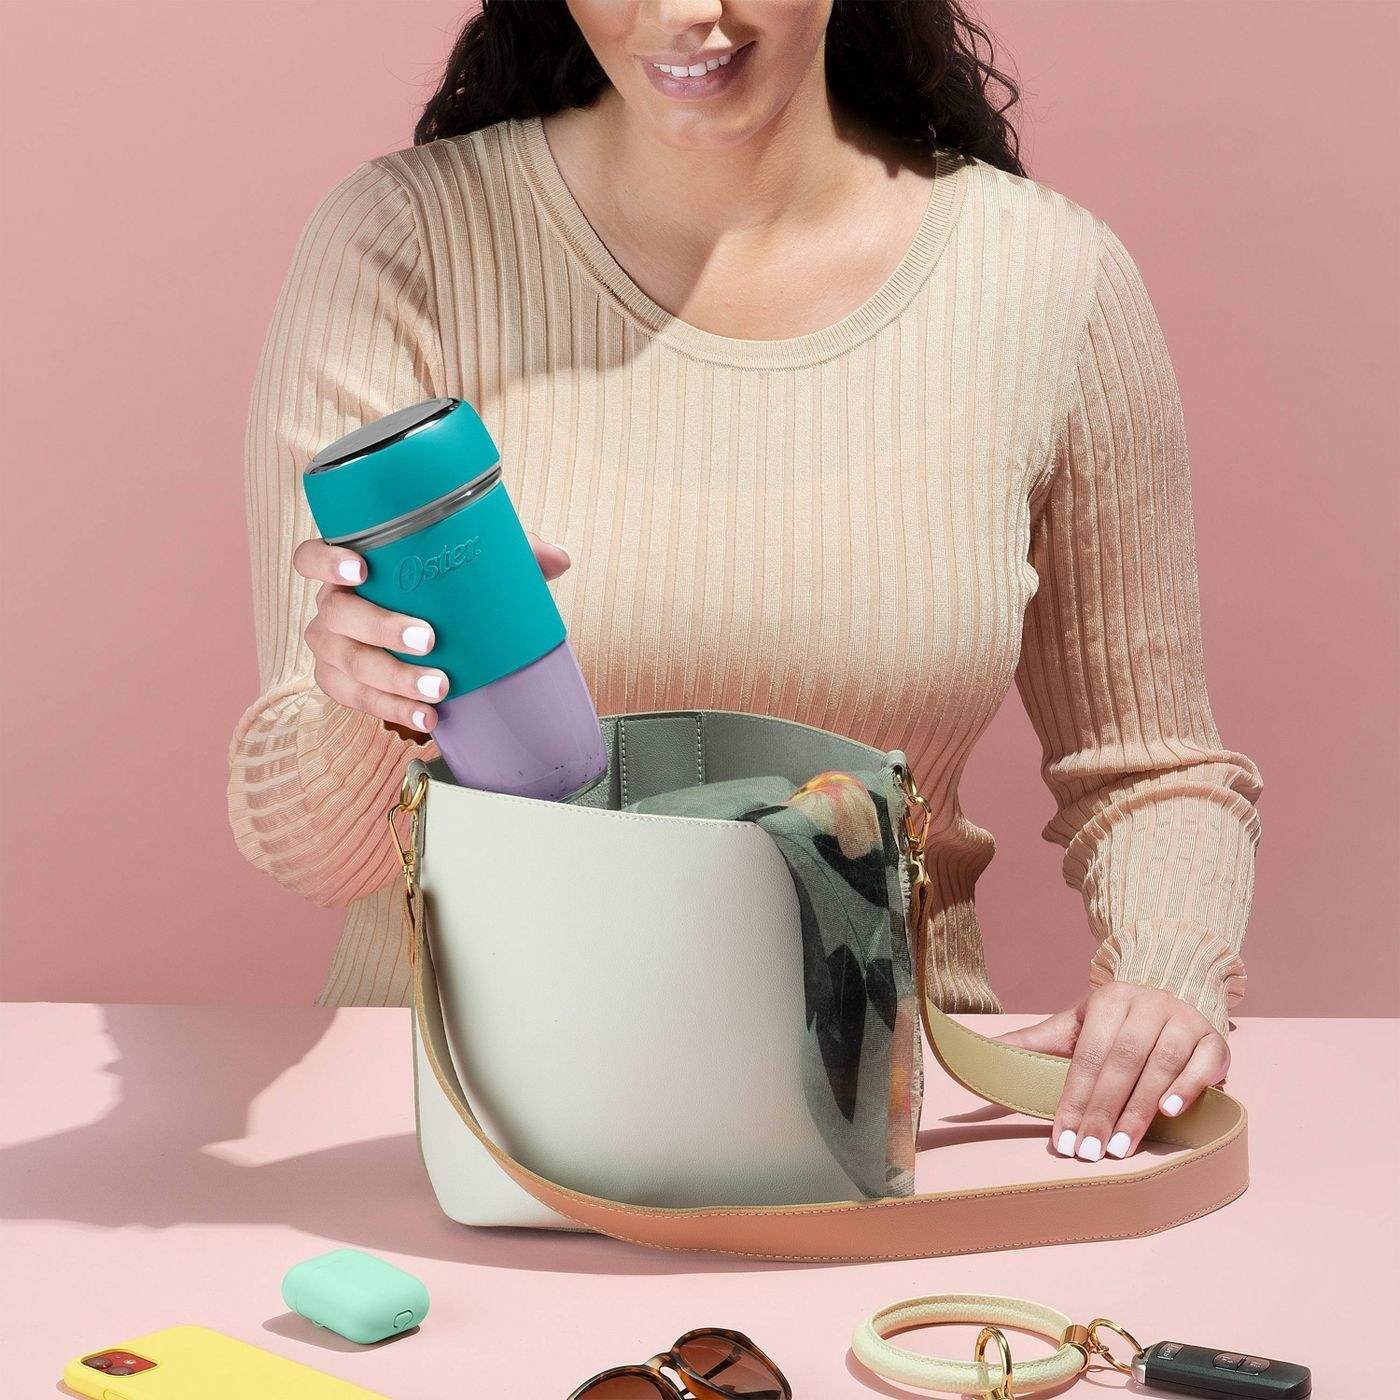 Model holding the teal portable rechargeable blender